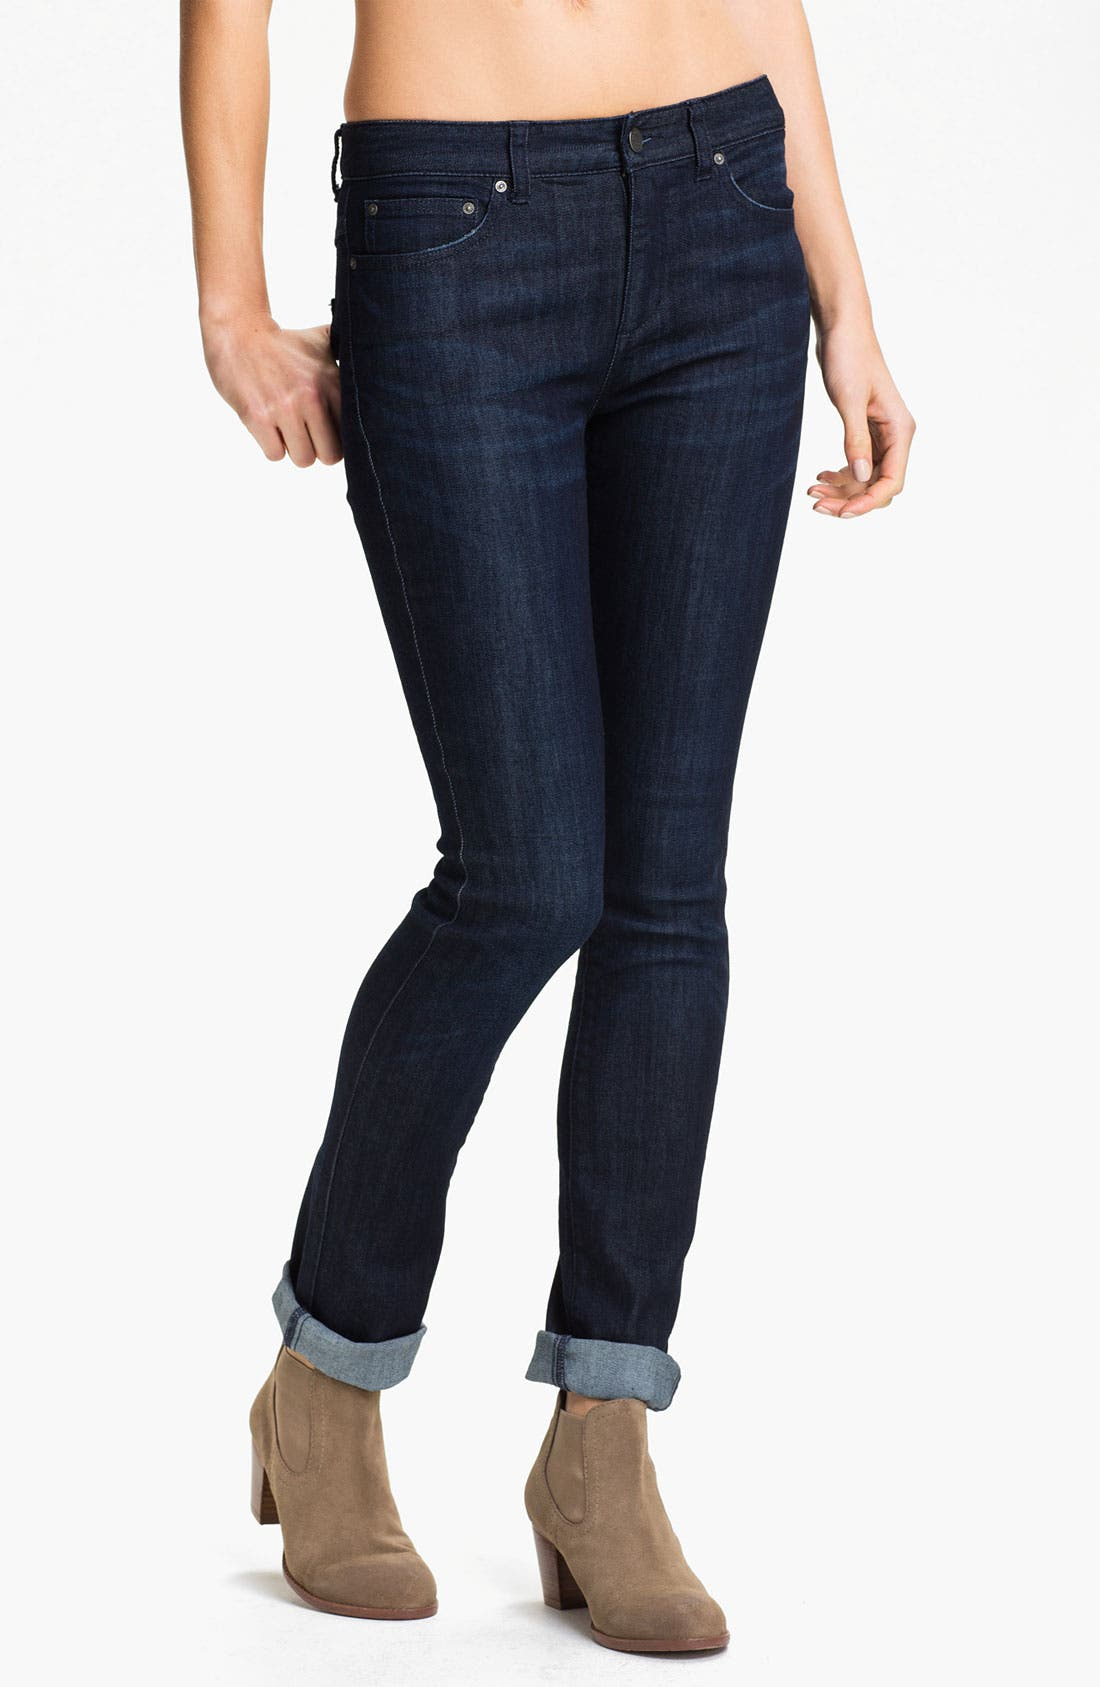 Main Image - Free People Stretch Denim Skinny Jeans (Dark Eagle Blue Wash)